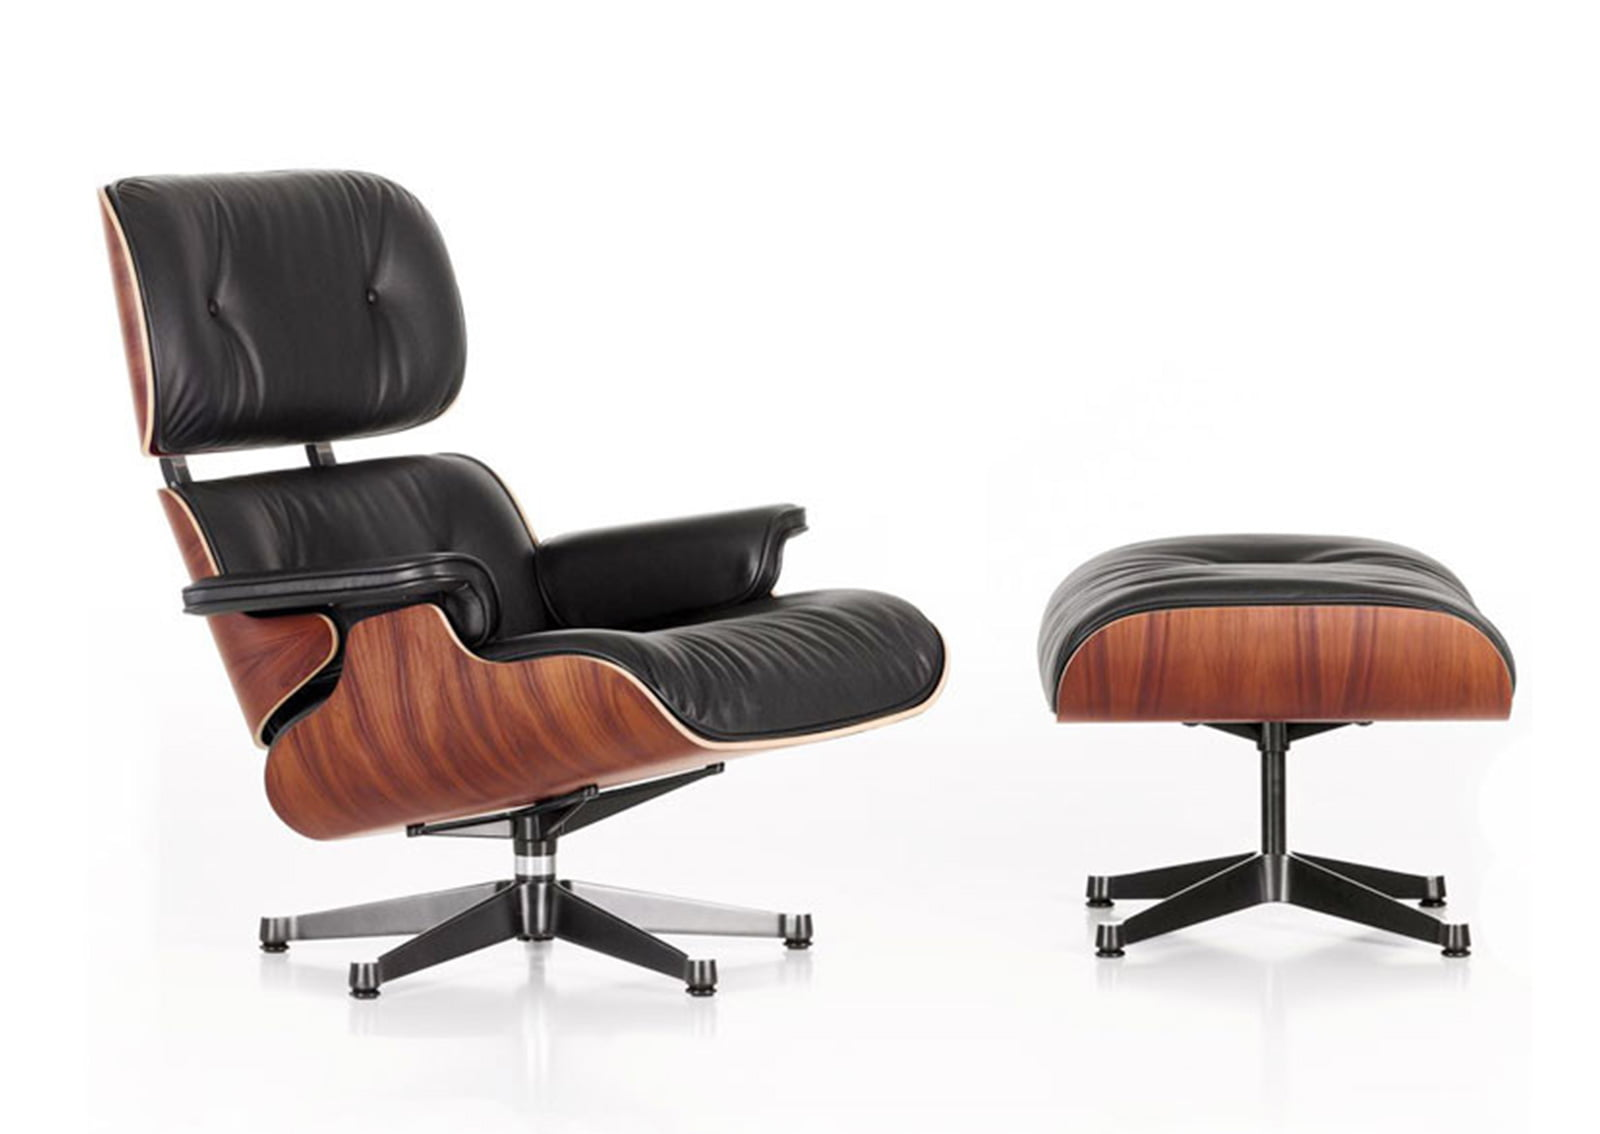 Eames Chairs Eames Lounge Chair With Ottoman Furnishplus